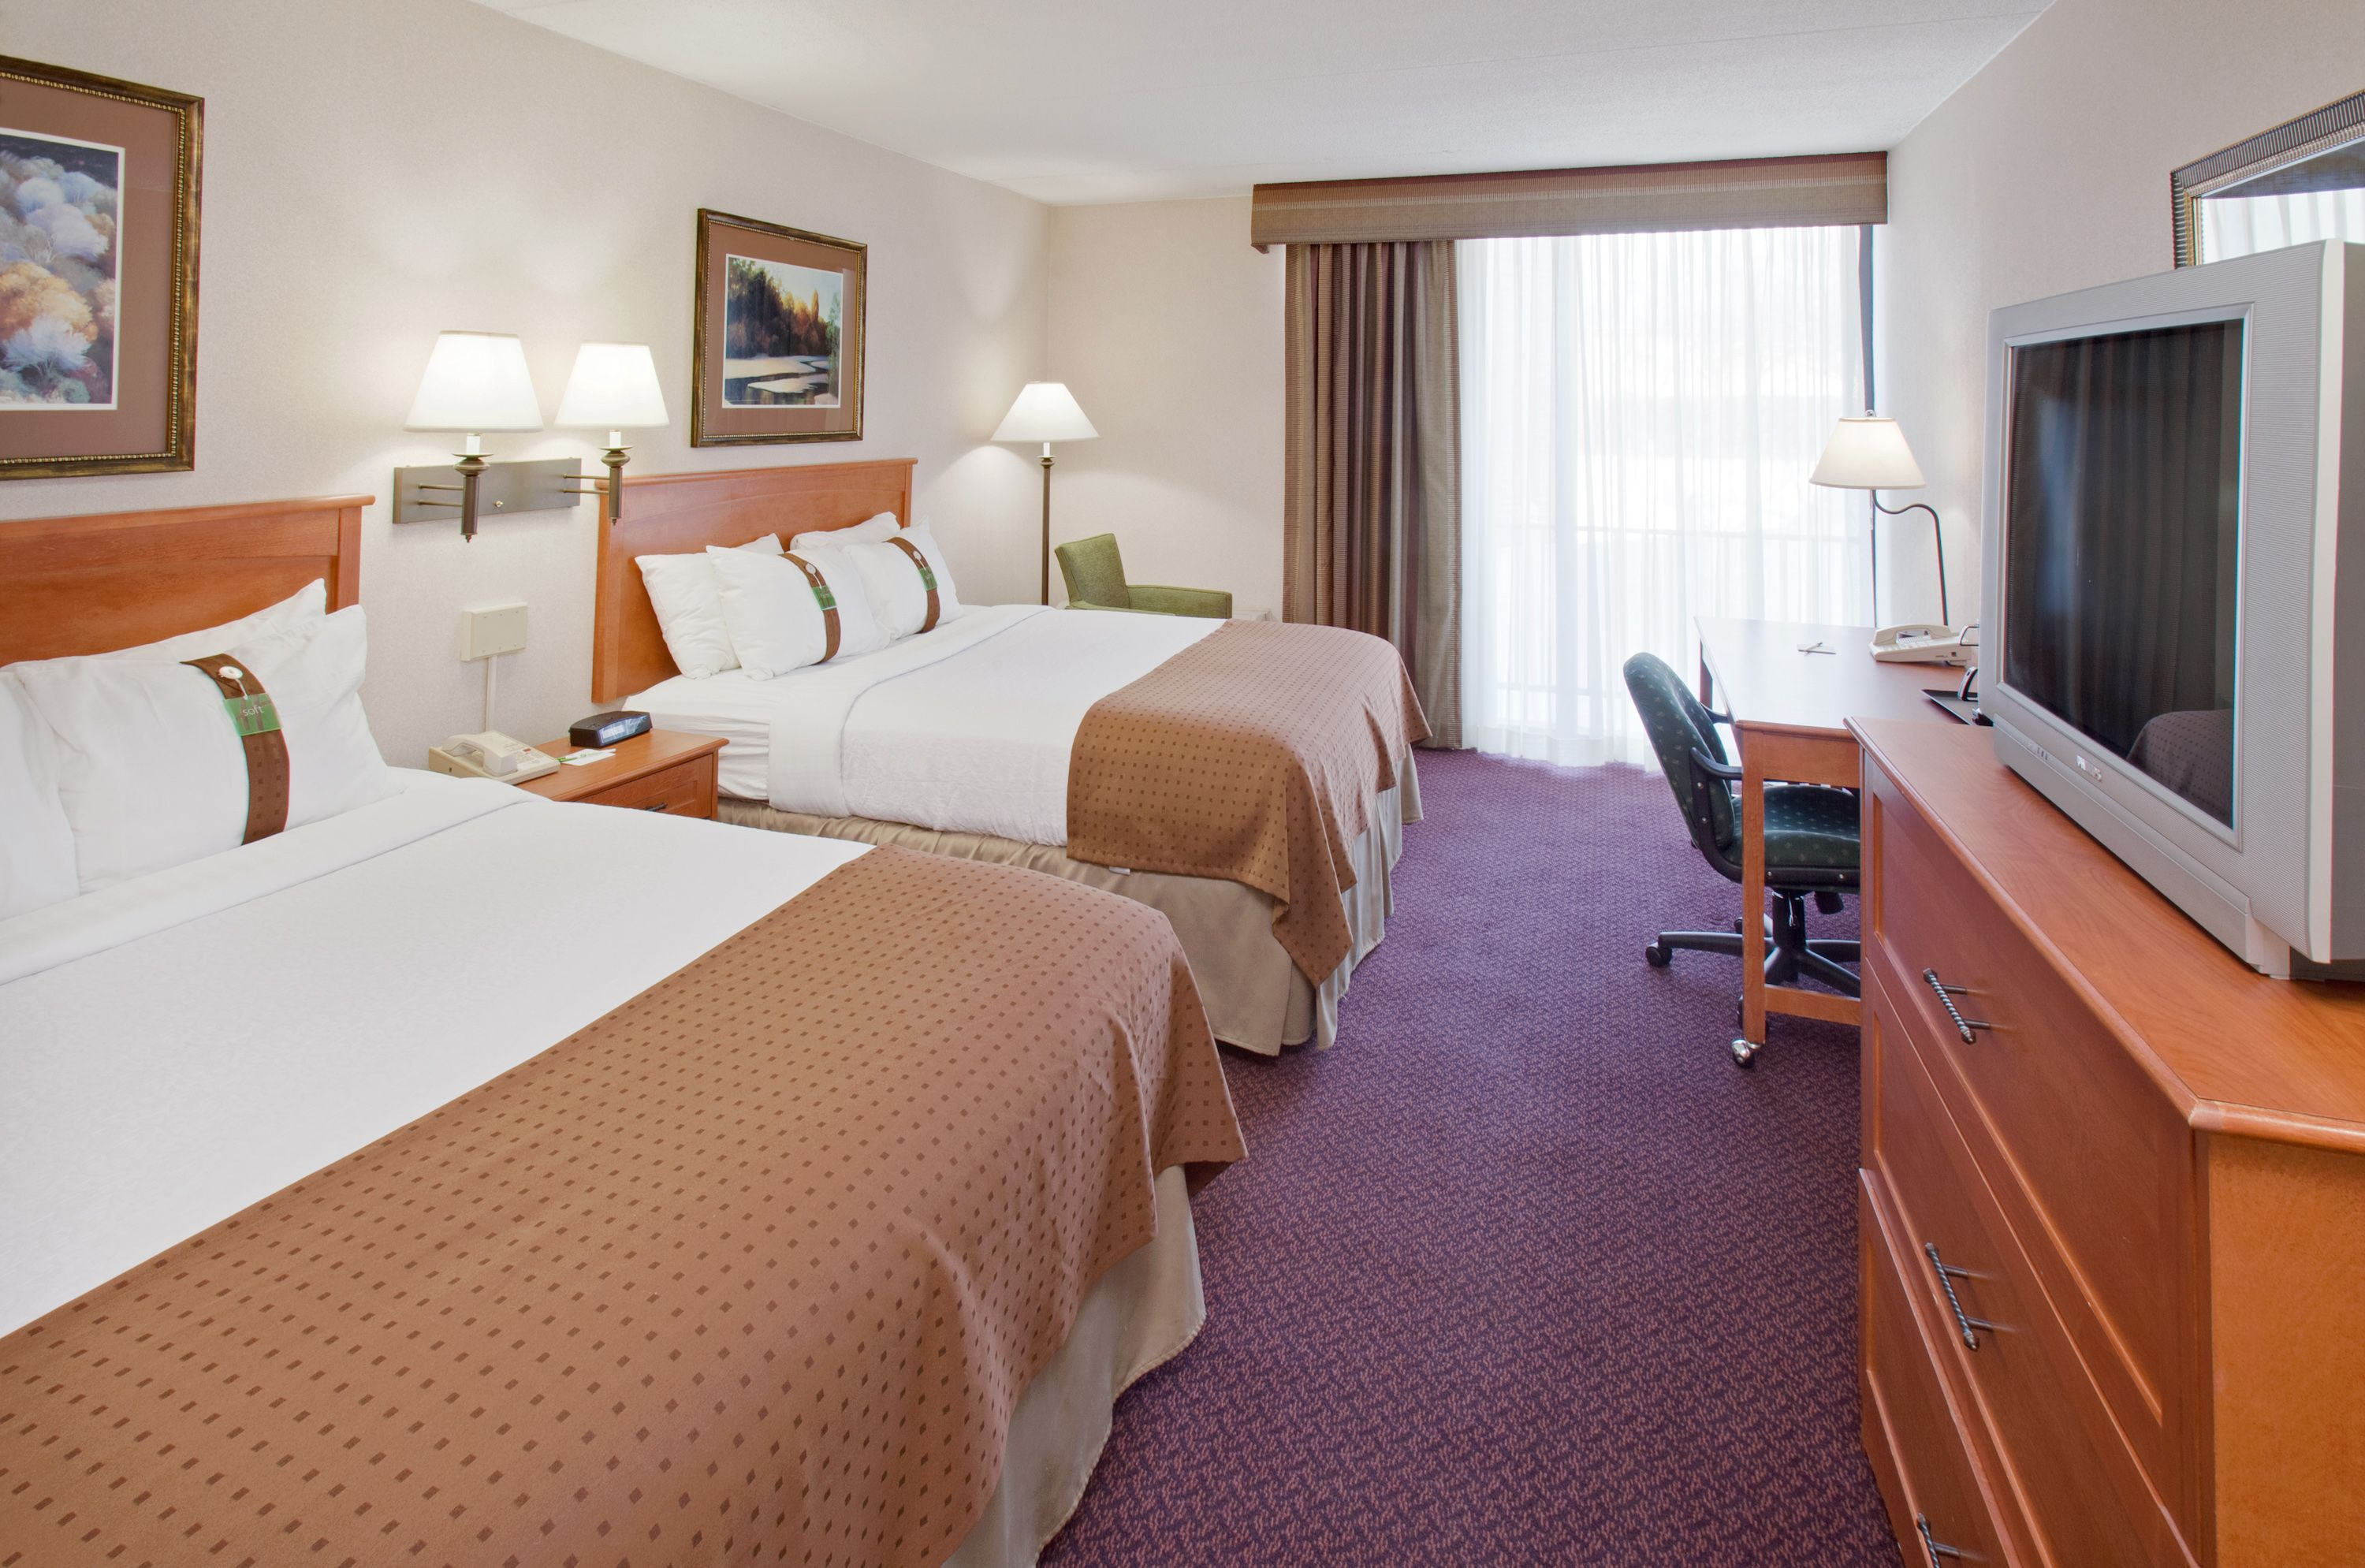 Des Moines Holiday Inn And Suites At The Holiday Inn And Suites